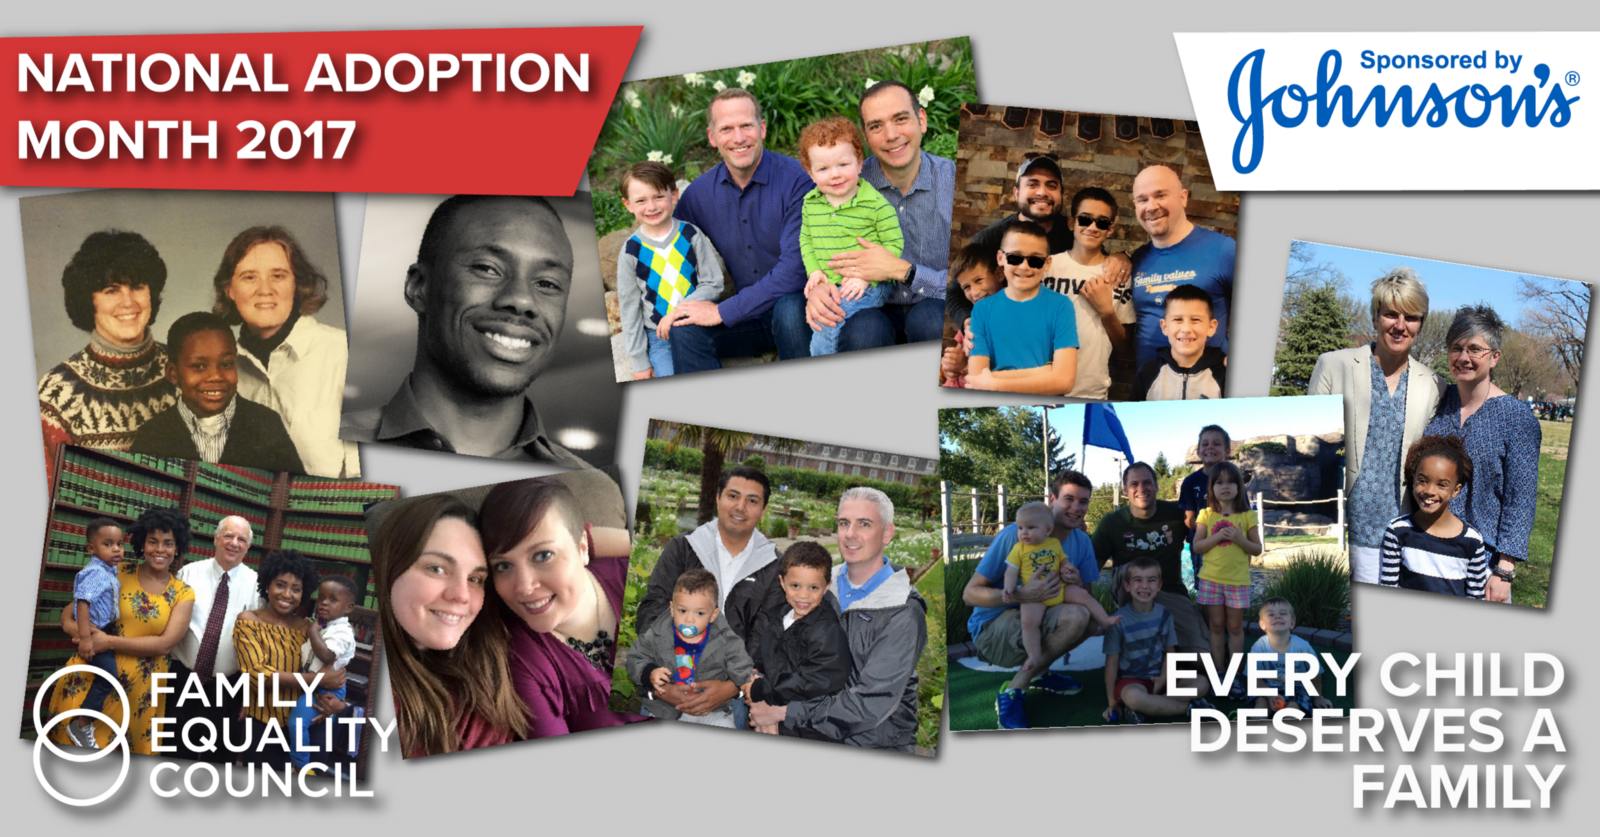 Thank You for Celebrating National Adoption Month With Us